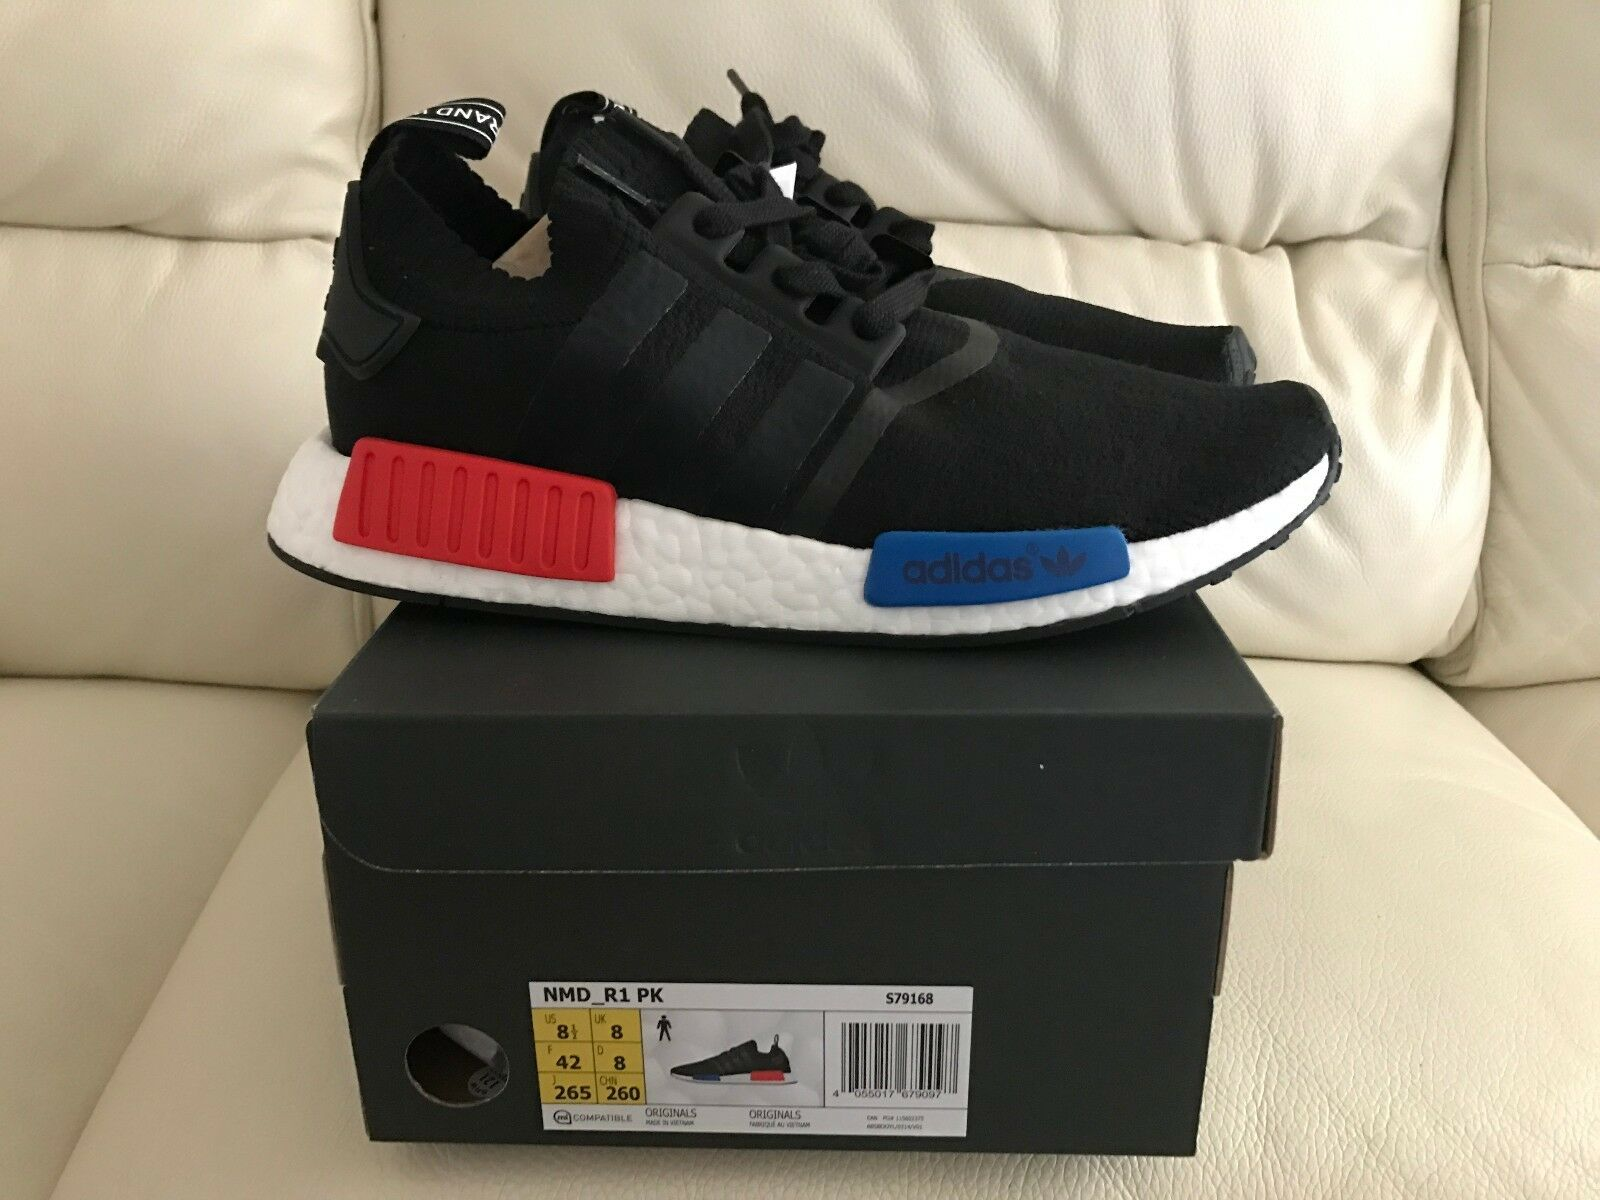 ADIDAS NMD NMD NMD Primeknit RUNNER Og Nero Blu Rosso Tutte le taglie 04a27f